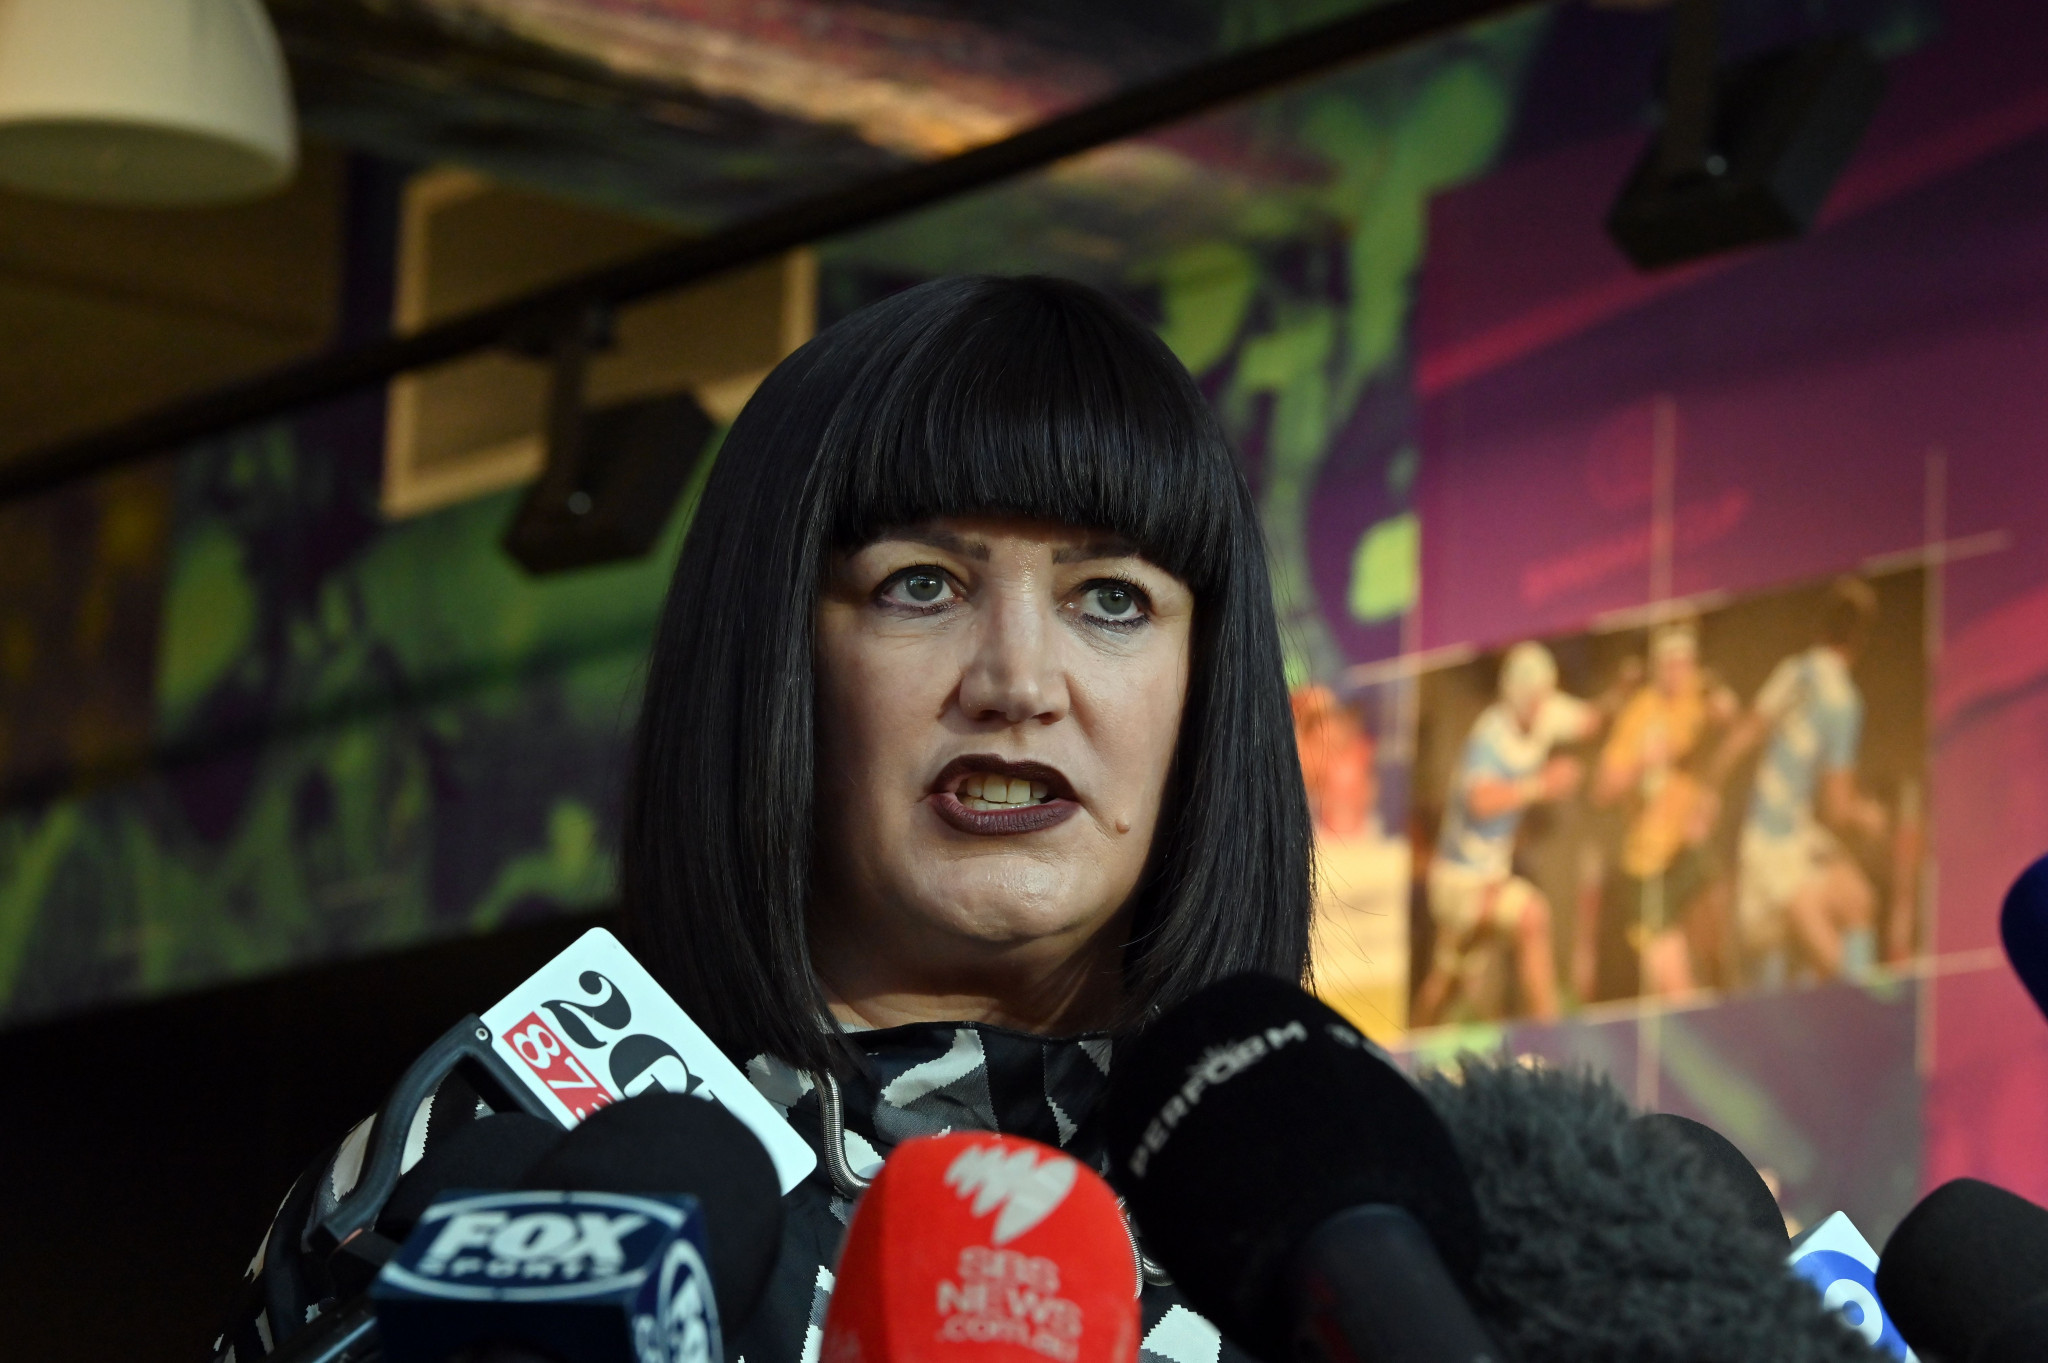 Rugby Australia chief executive Raelene Castle said Israel Folau's request for a code of conduct hearing was not an